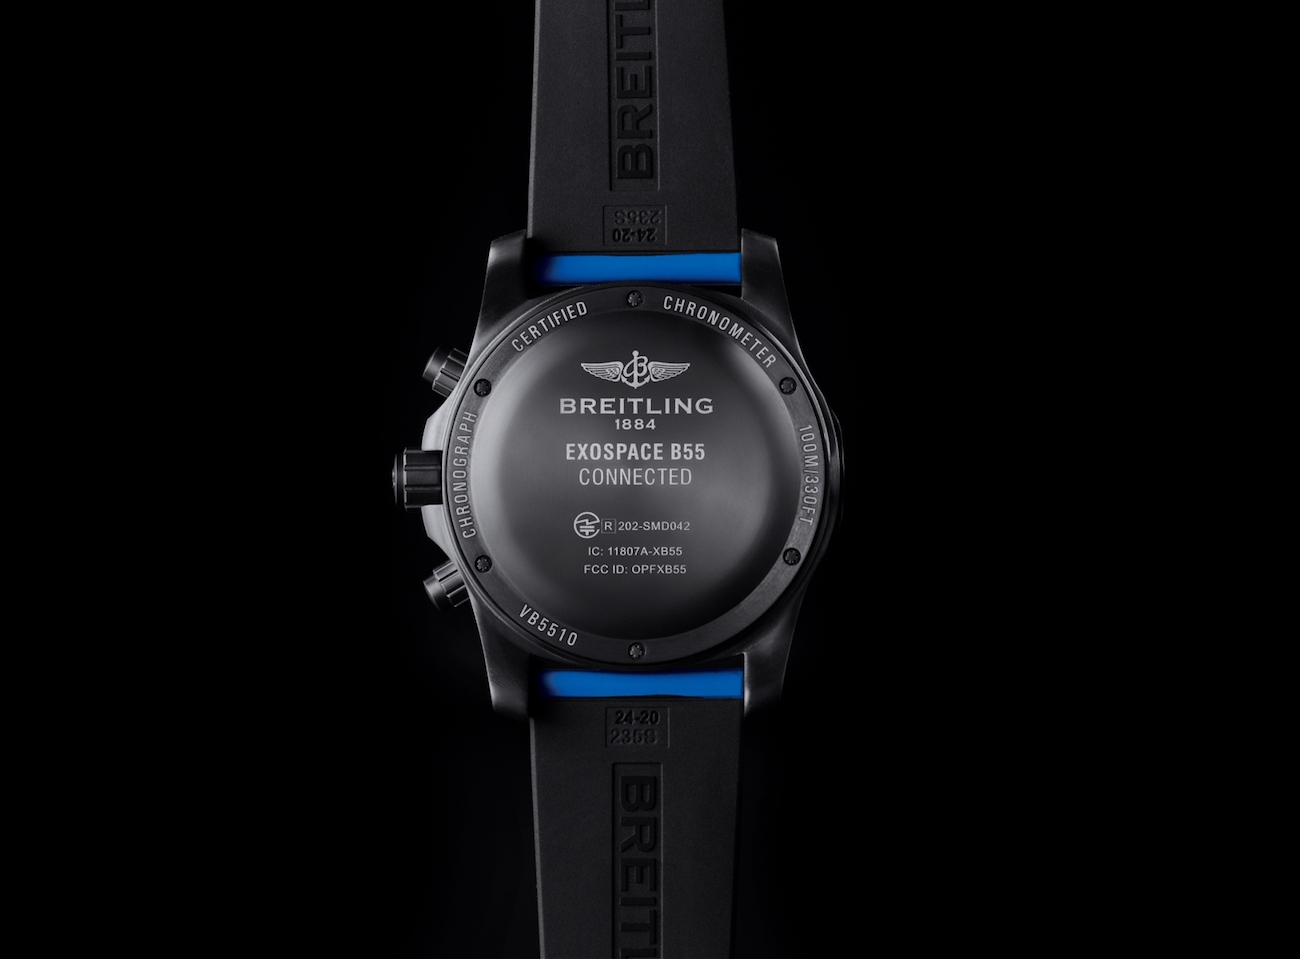 breitling-exospace-b55-connected-smartwatch-04